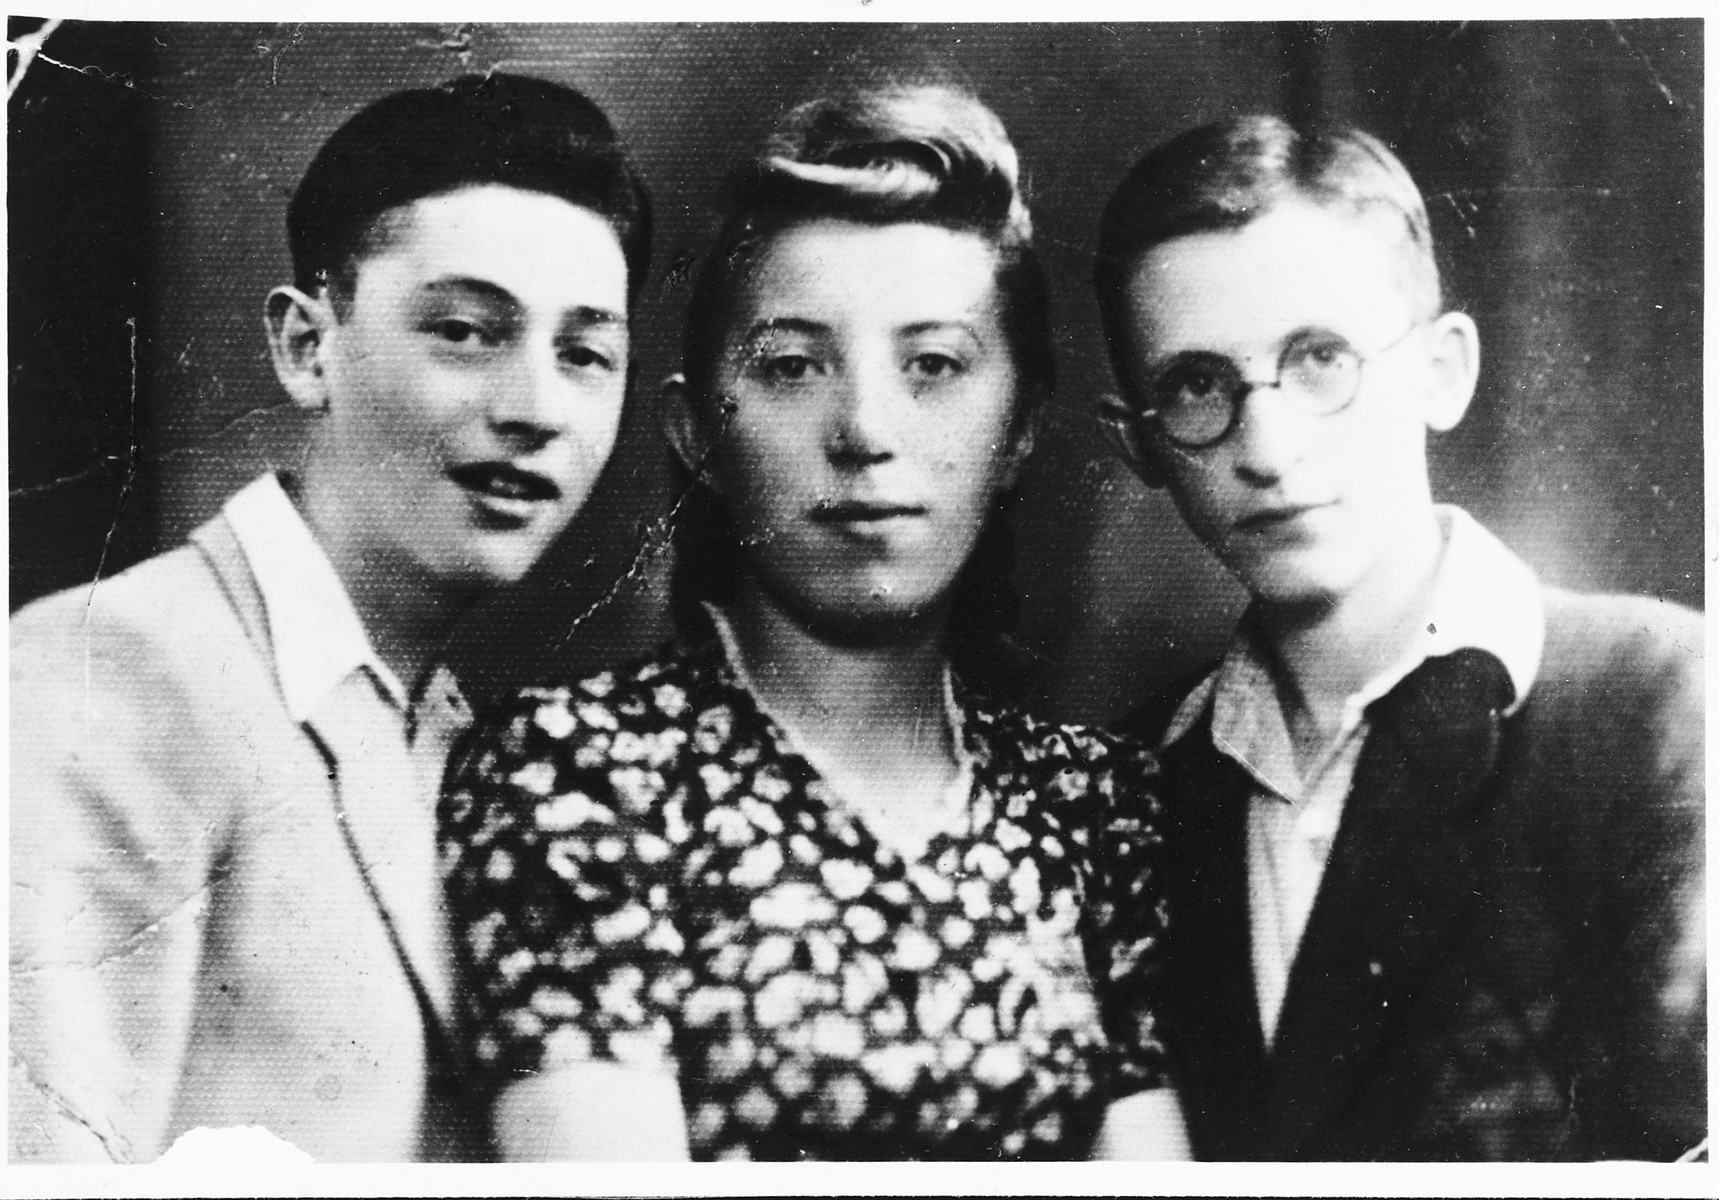 Portrait of three young people in the Bedzin ghetto, one of whom is wearing a Jewish star.  Pictured from left to right are Natan Gipsman, Regina Fajerman and Efroim Poremba.  Regina Fajerman was married to Mendel Magier-they had a child and Regina and the baby were killed at Auschwitz August 1943.